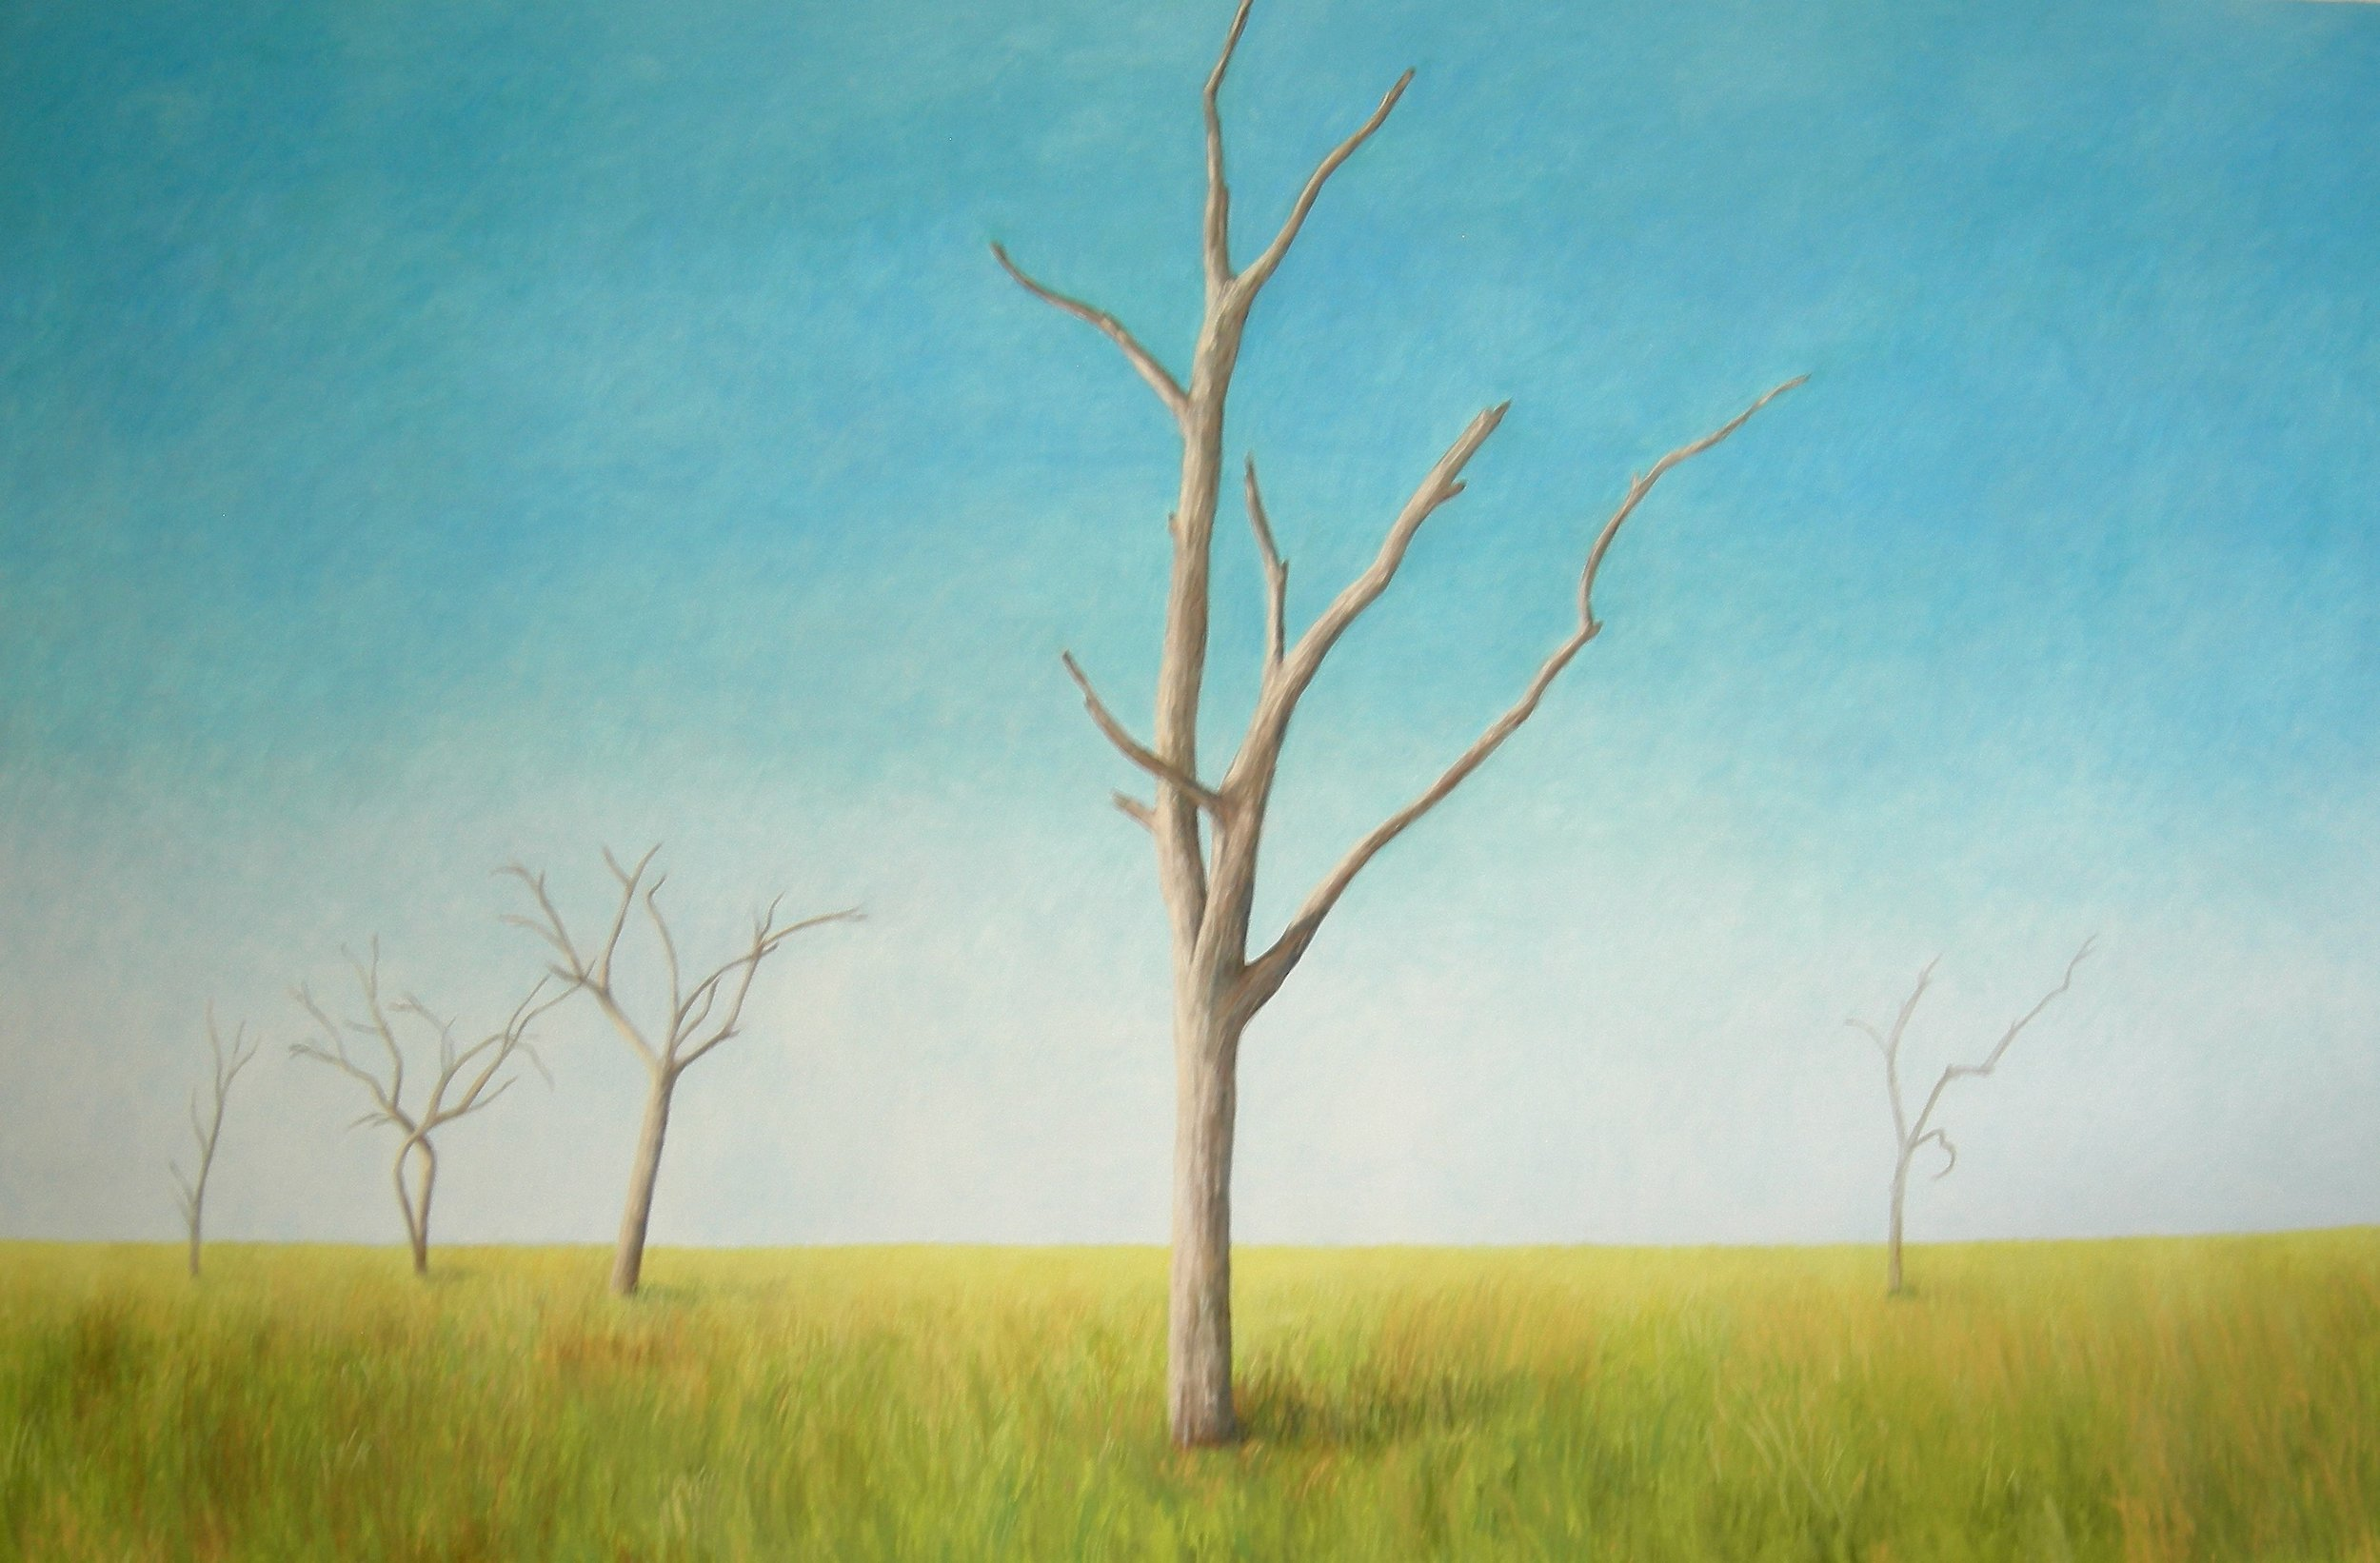 Wetland, 2007, oil on canvas, 120 x 72 in, $10,000